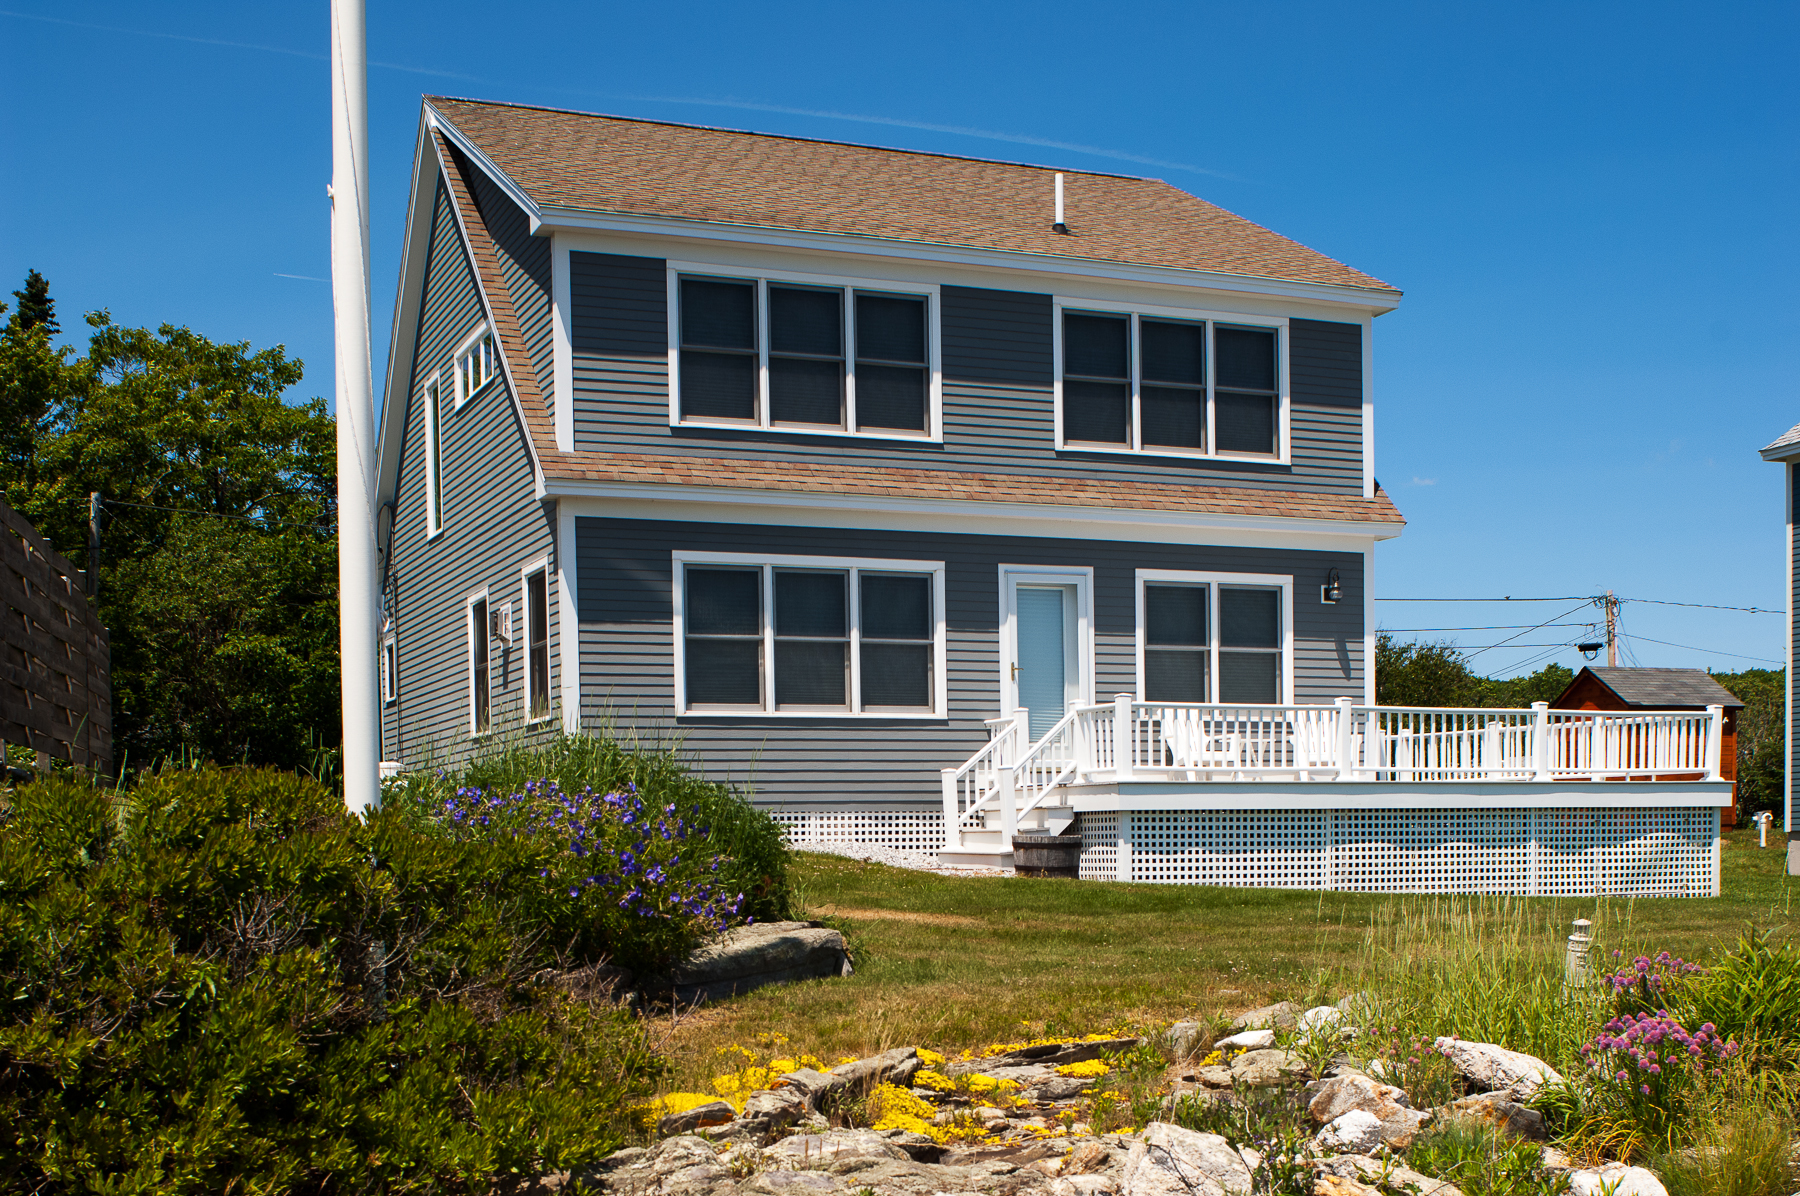 Single Family Home for Sale at Salt Pond Point 5 Salt Pond Point Bristol, Maine 04554 United States